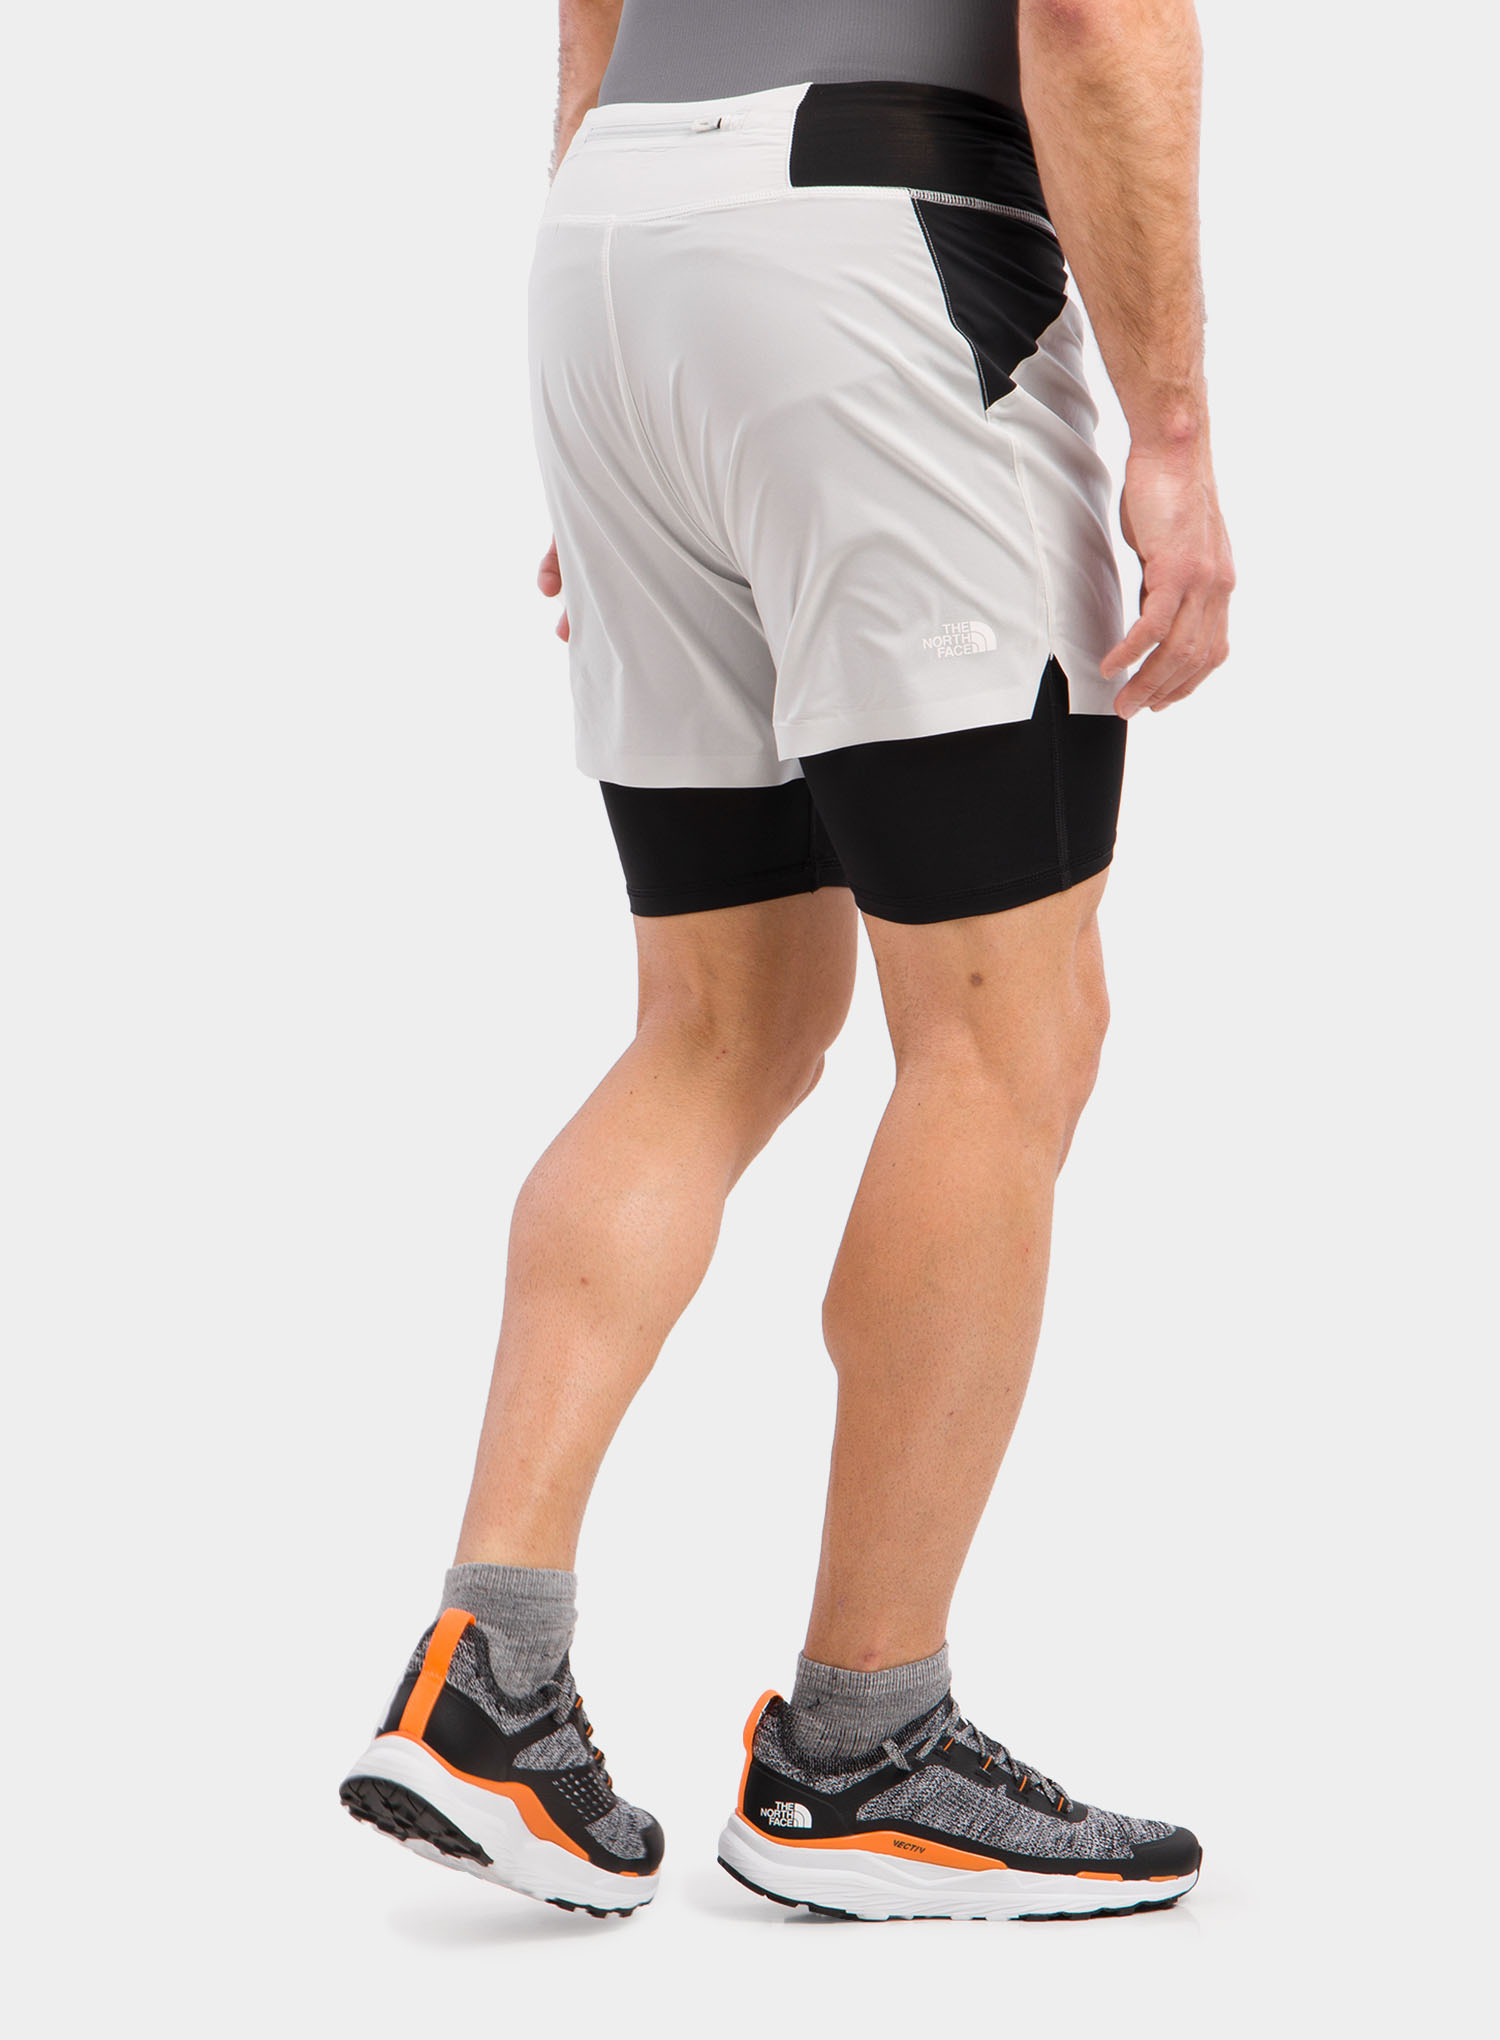 Spodenki The North Face Circadian Comp Lined Short - grey/blk - zdjęcie nr. 7